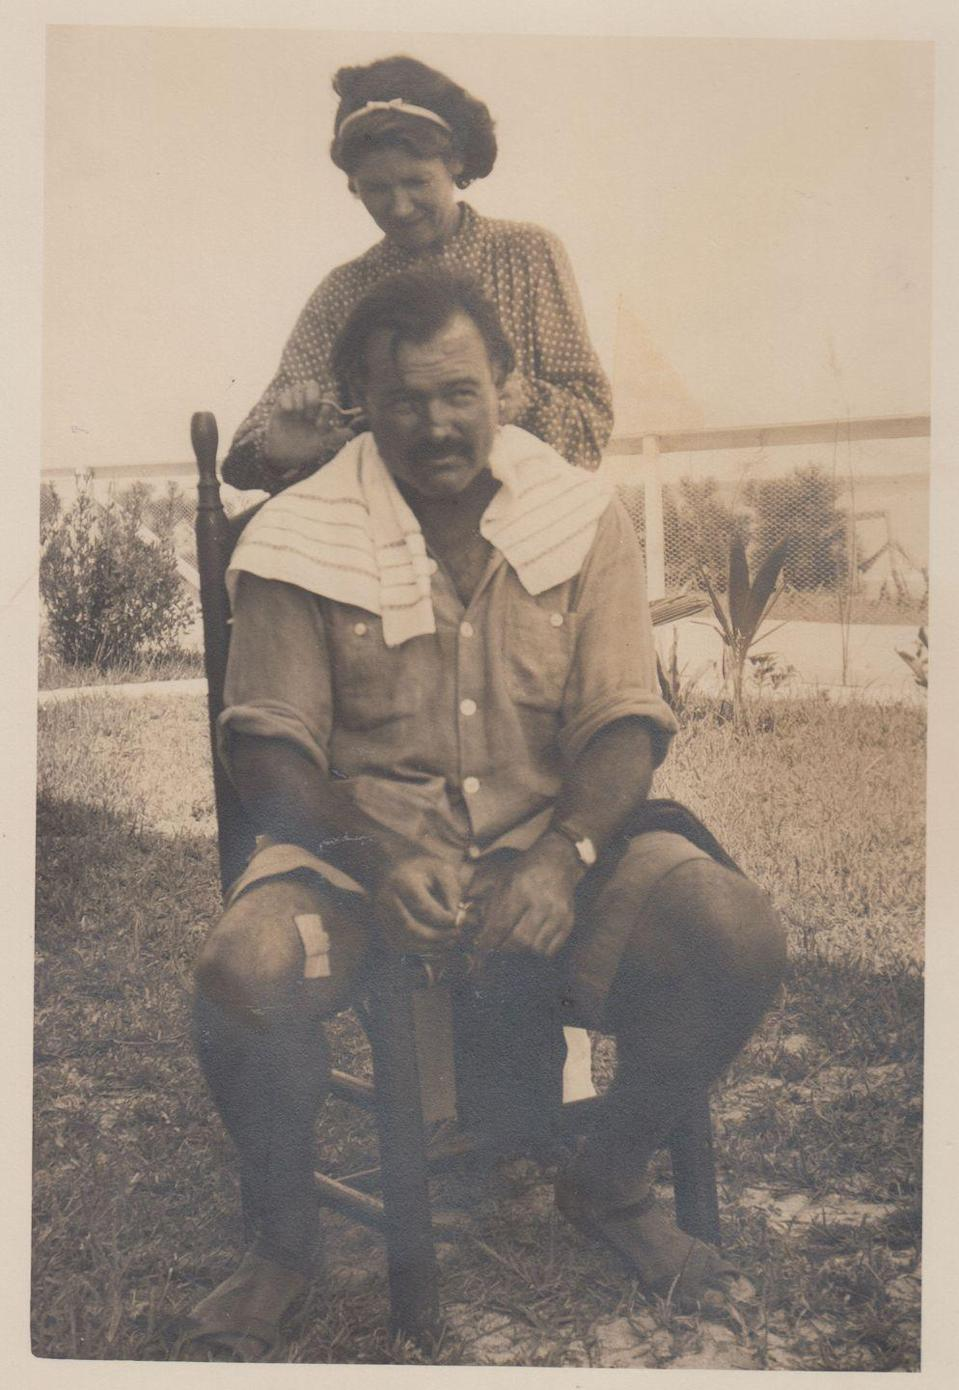 Photo credit: Ernest Hemingway Collection. John F Kennedy Presidential Library and Museum, Boston